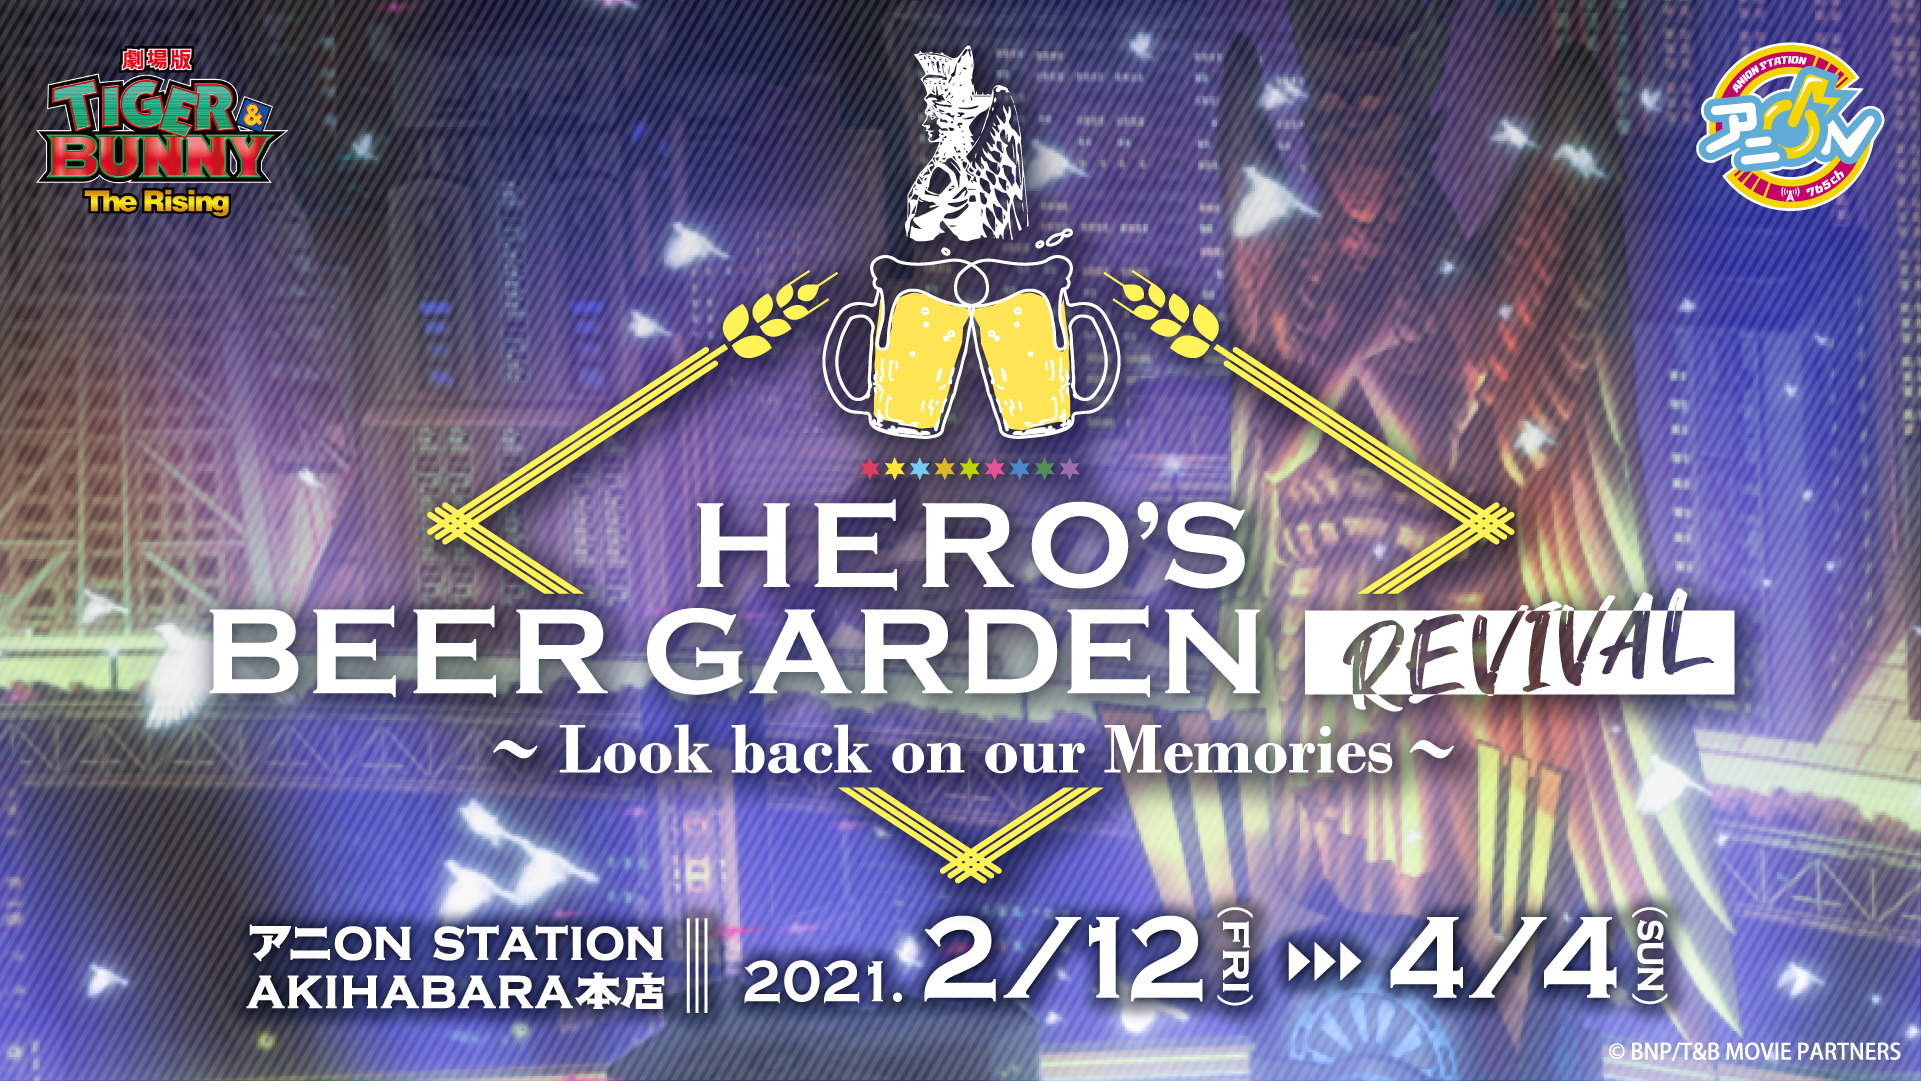 【3/25】HERO'S BEER GARDEN Revival